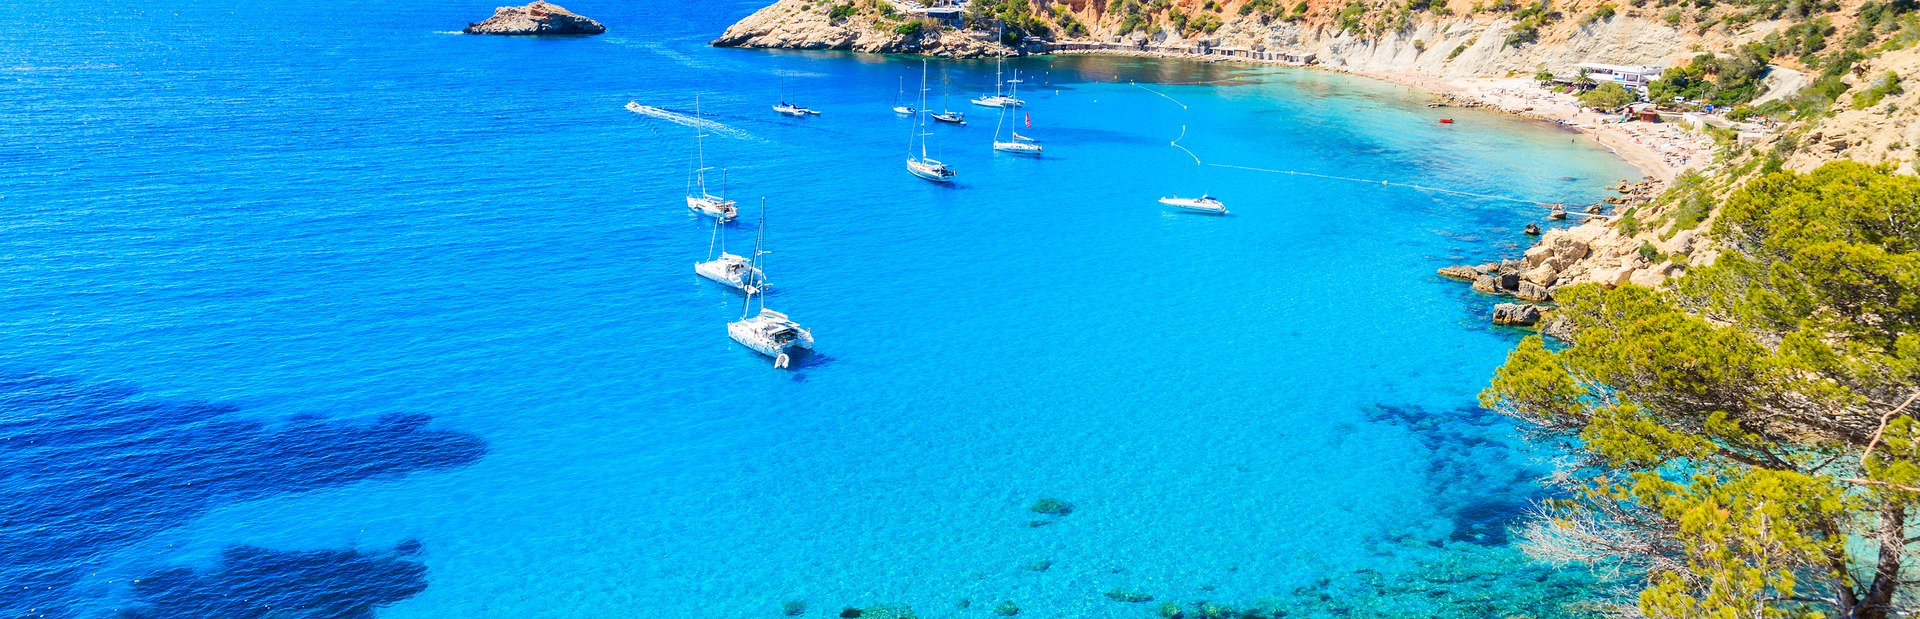 An insider's guide to Ibiza yacht charters: the beaches and beats of the Balearics